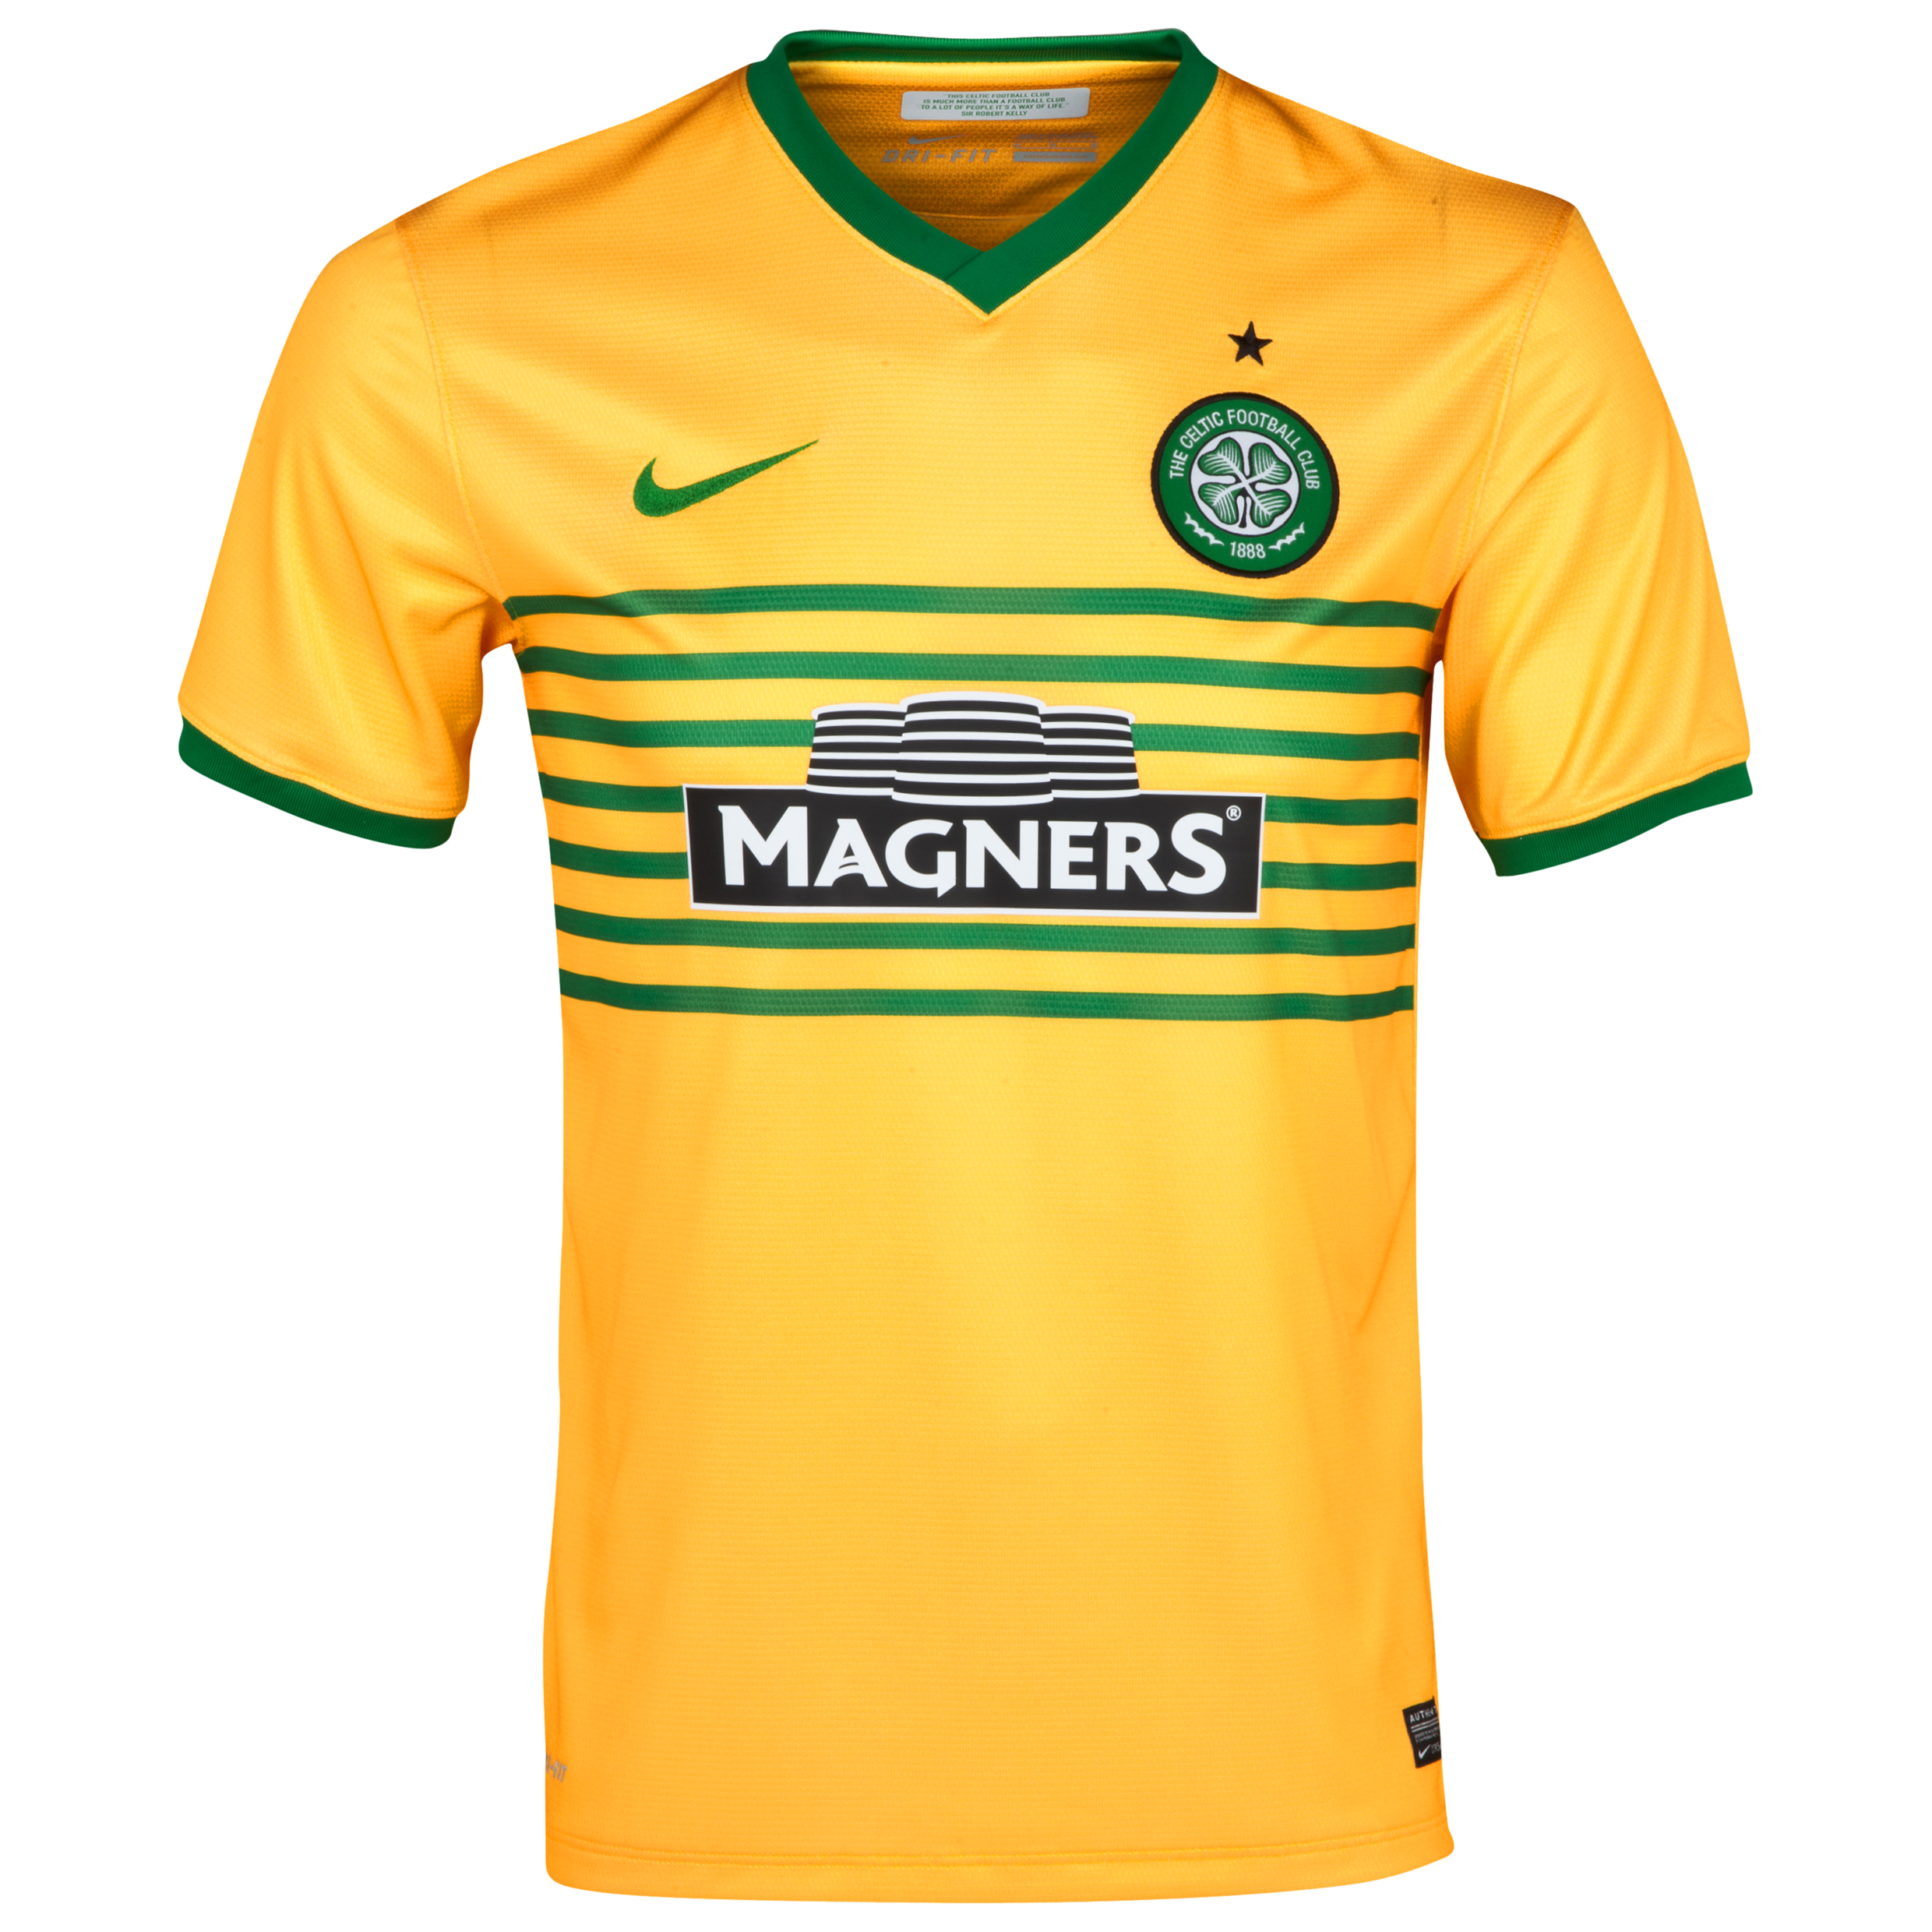 Celtic Away Shirt 2013/14 - With Sponsor